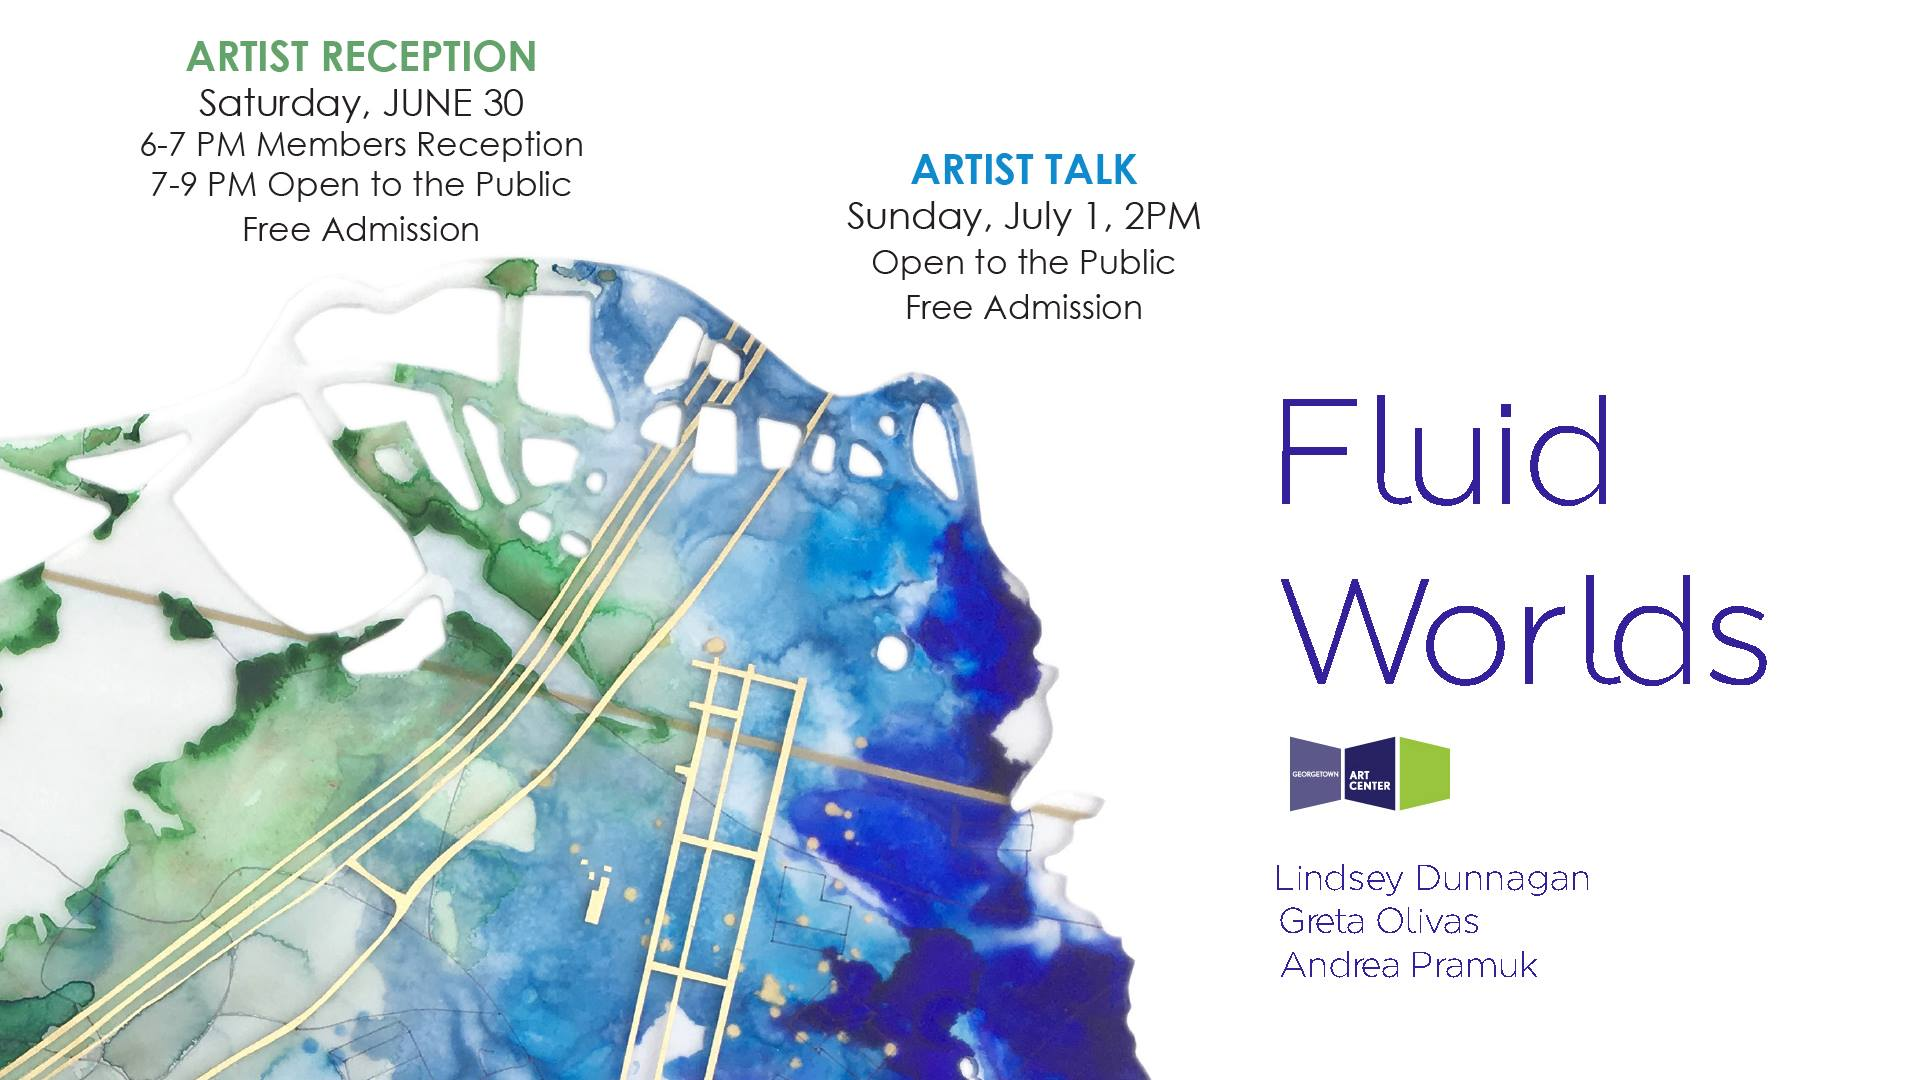 Fluid Worlds at the Georgetown Art Center: June 30 - August 5, 2018